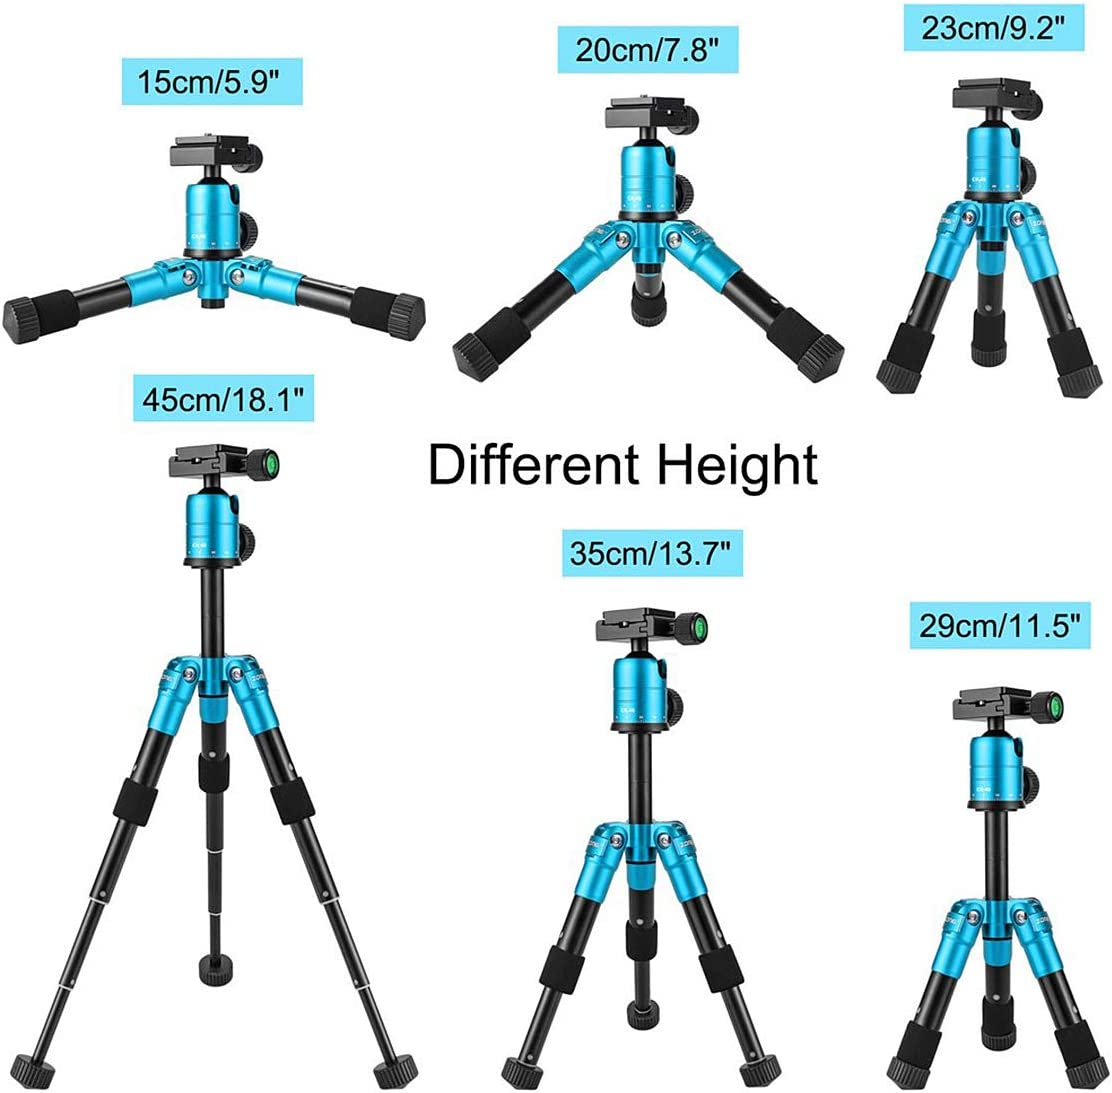 Compact Lightweight Aluminum Tripod with 360/° Panorama Ball Head for DSLR Monopod Tripod for Travel and Work Aceyyk Video Camera Tripod